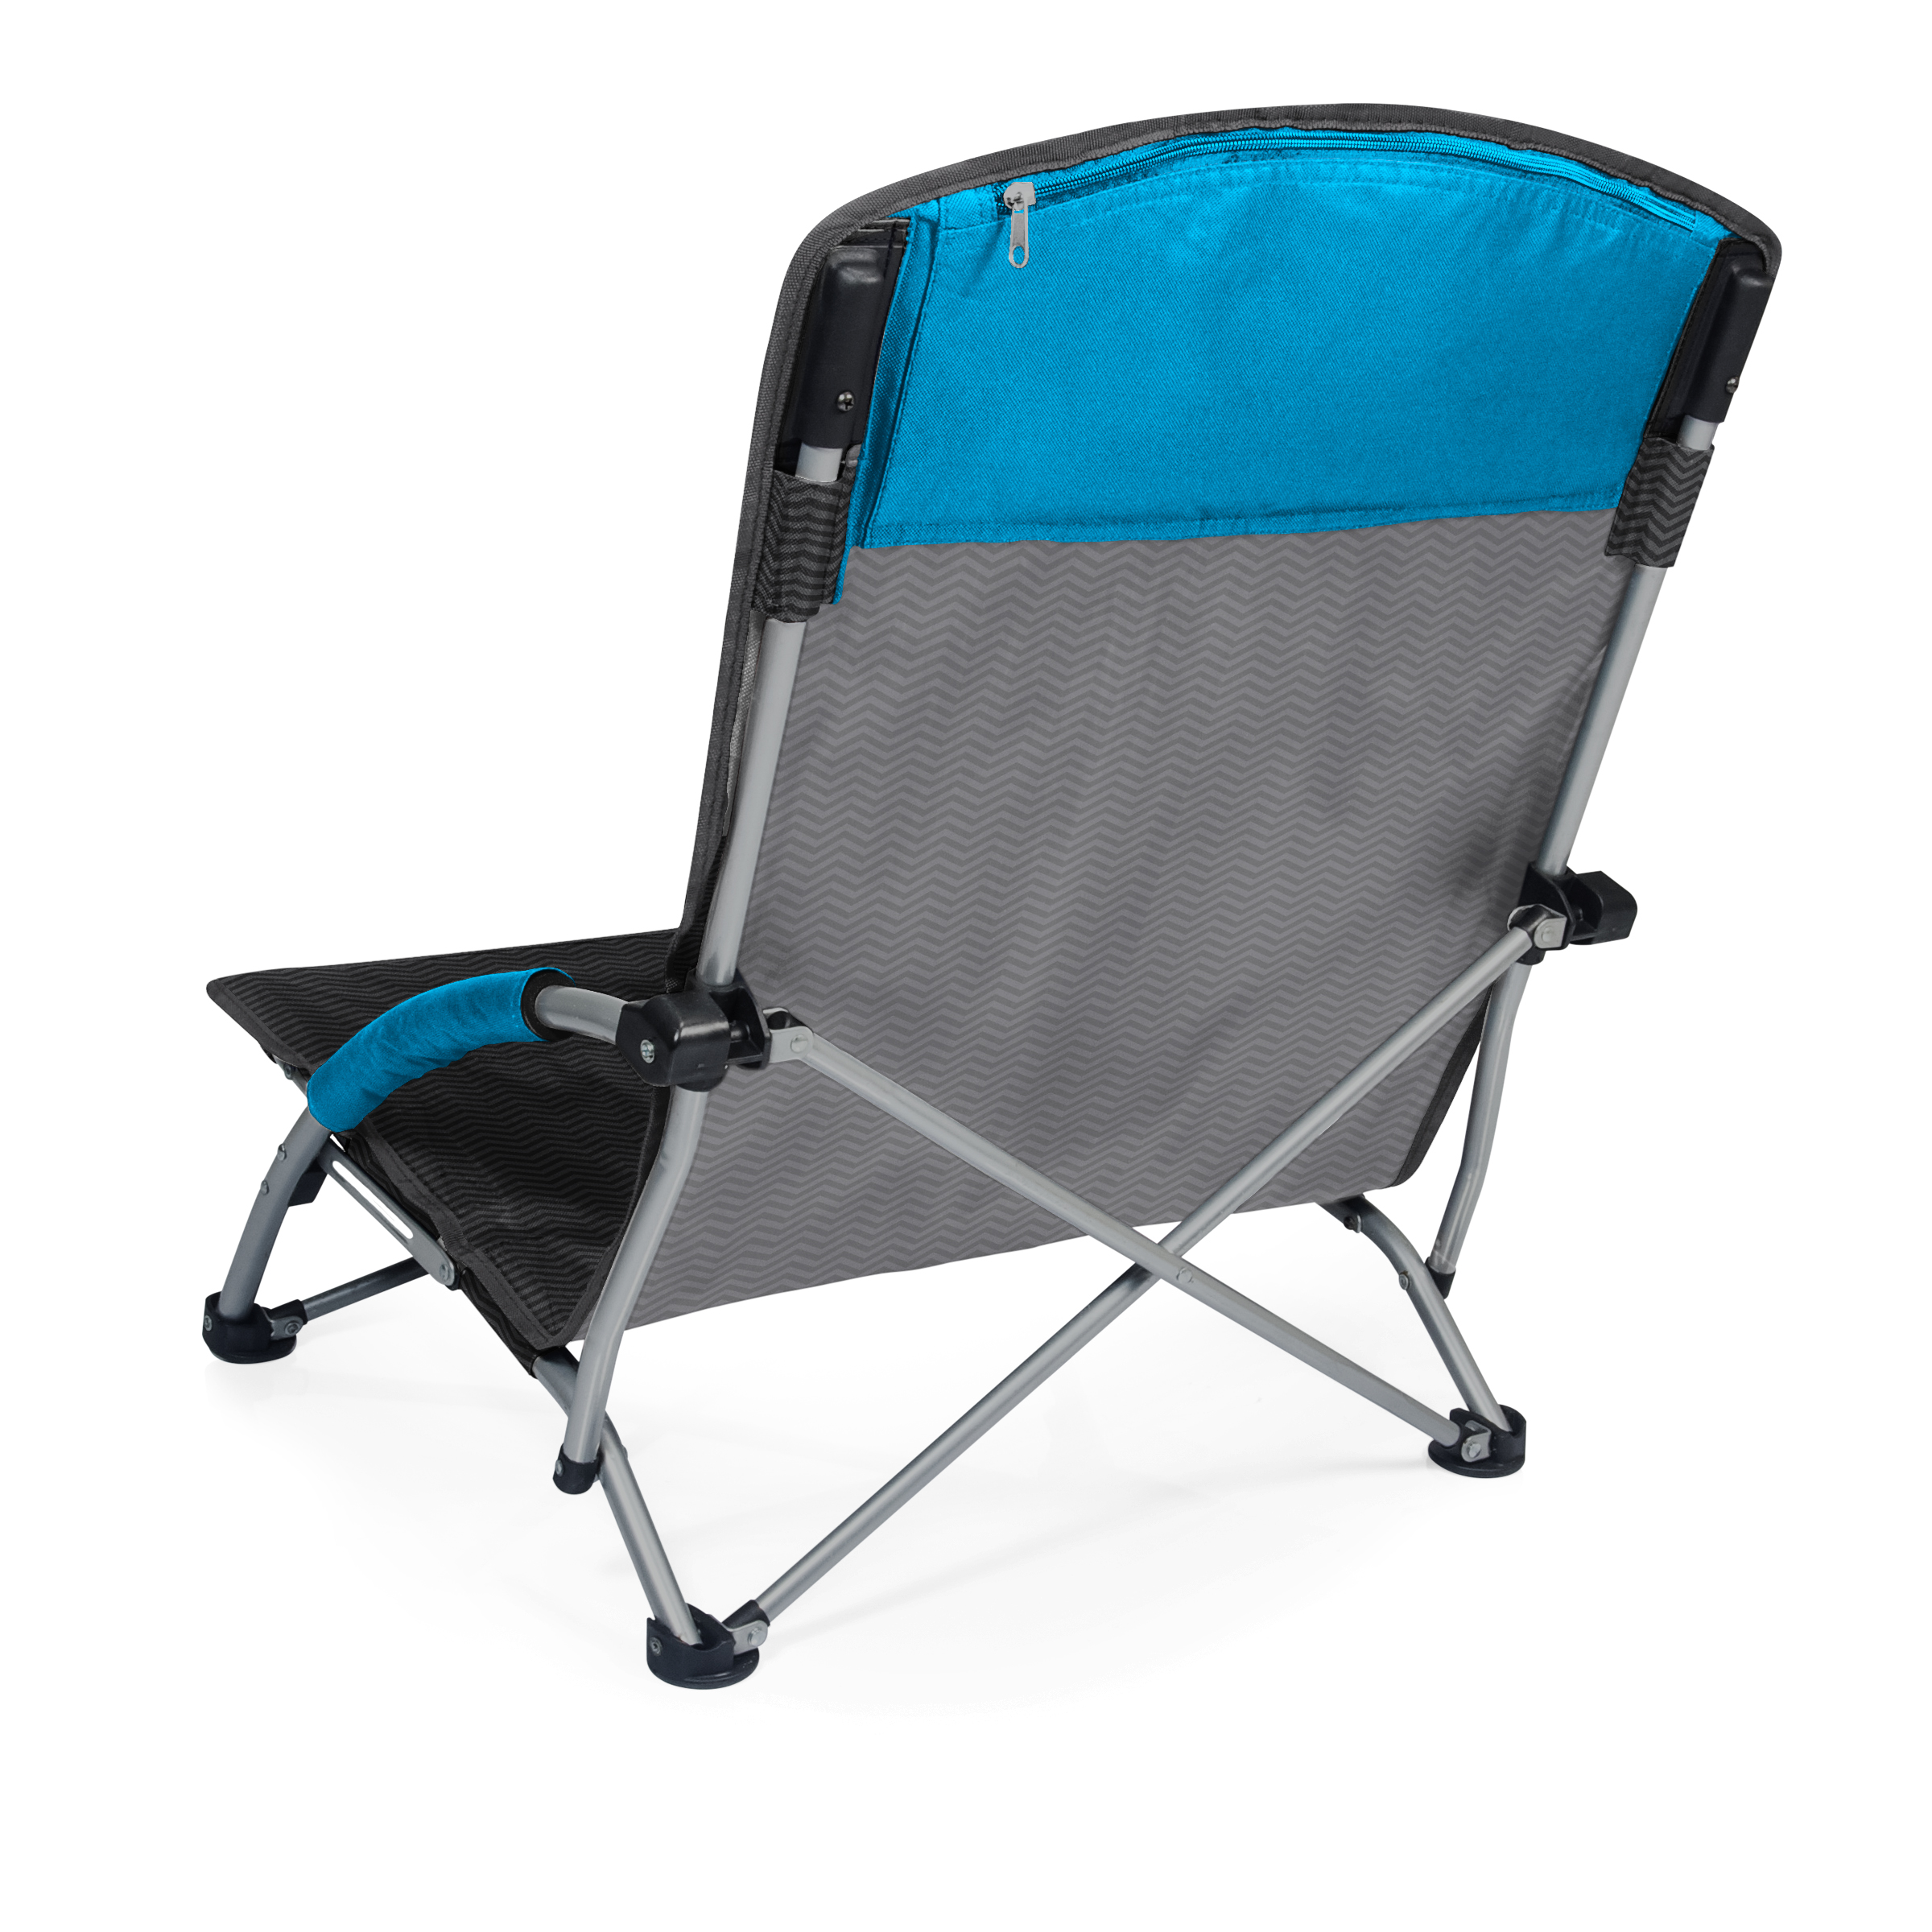 picnic time chairs safavieh dining target tranquility chair portable beach waves